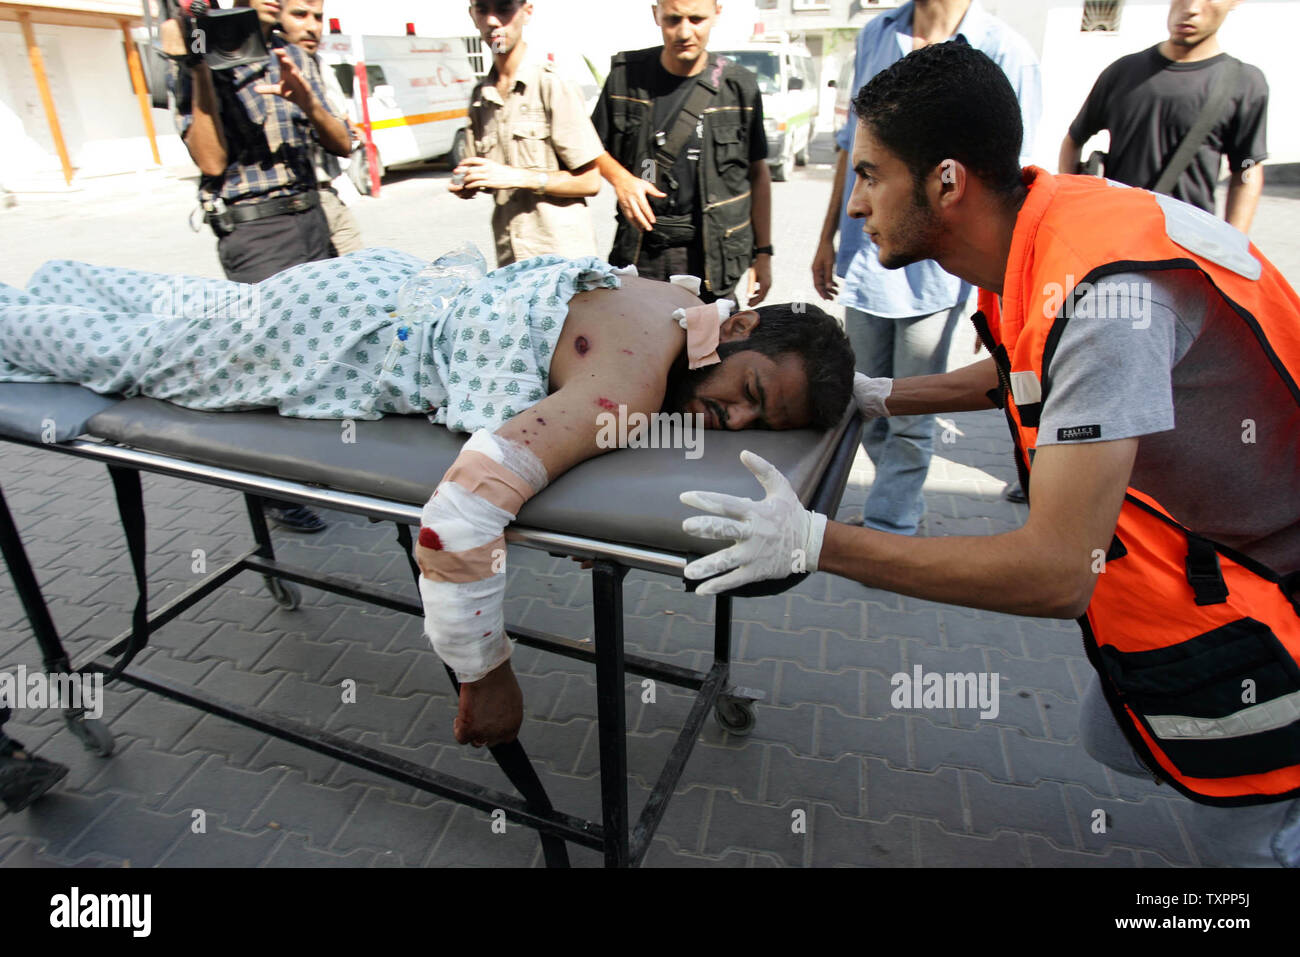 A Palestinian ambulance worker wheels a man wounded by Israeli troops in Beit Lahia, northern Gaza Strip on July 6, 2006. Israeli infantry and armor launched a large-scale operation into the northern Gaza Strip in the early morning, effectively establishing a new buffer zone in an attempt to prevent the launch of improved Palestinian Qassam rockets which have struck downtown Ashkelon in the past few days.  (UPI Photo/Ismael Mohamad) - Stock Image